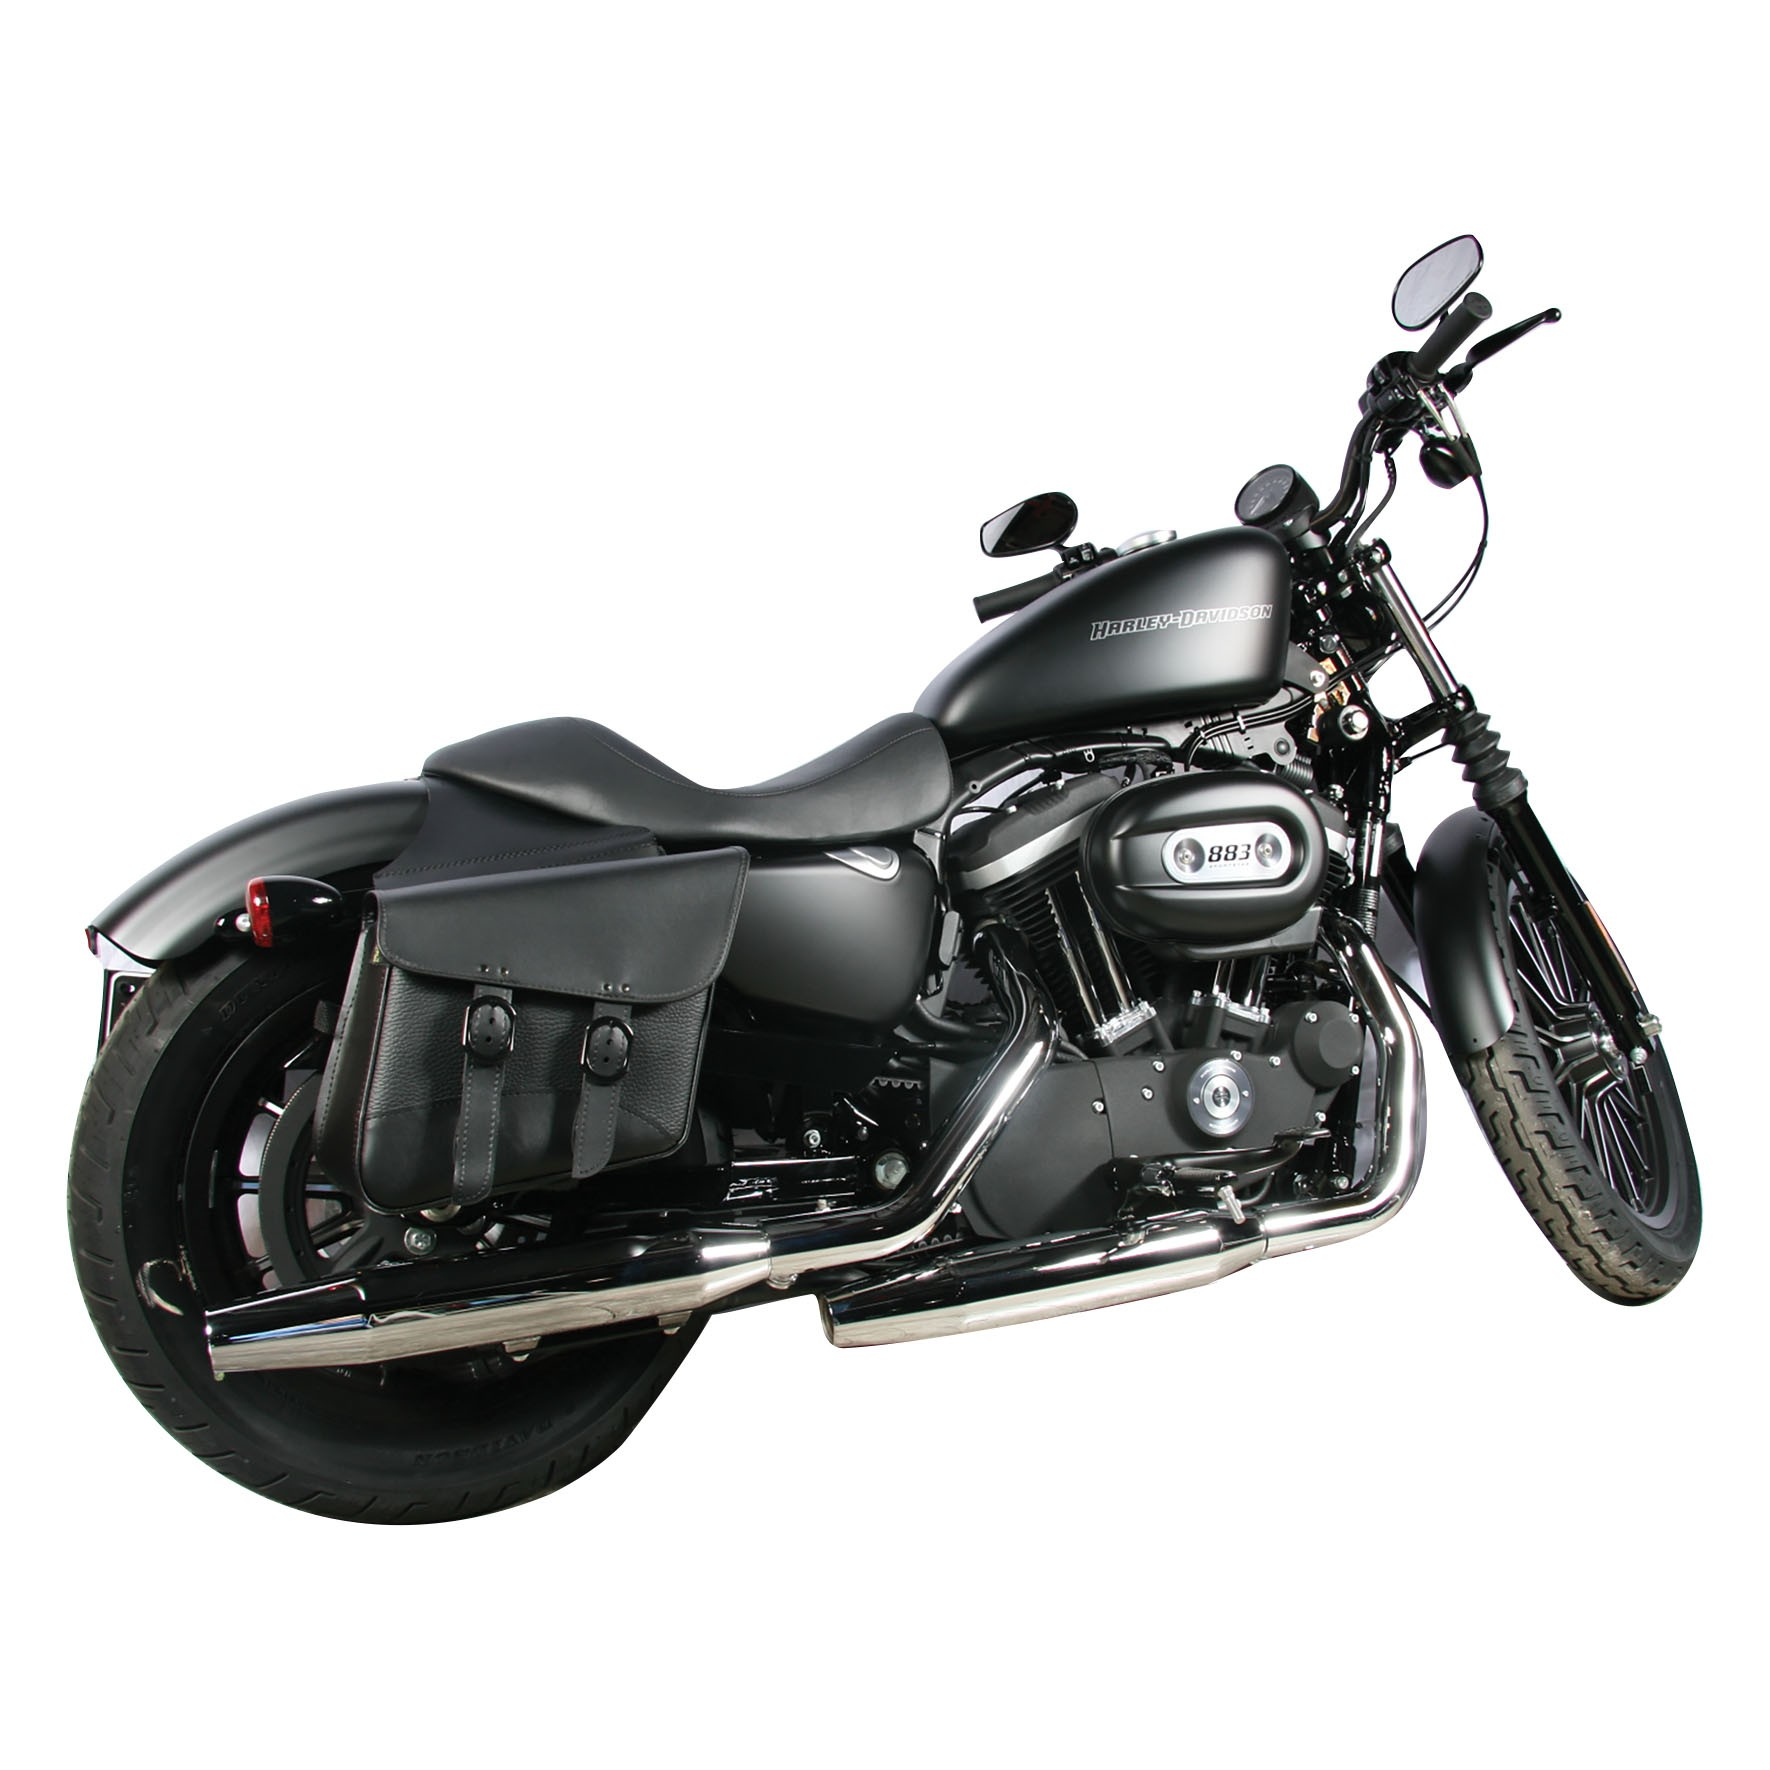 Dowco Willie and Max Blackjack Compact Slant Saddlebags on a Harley-Davidson Sportster XL 883